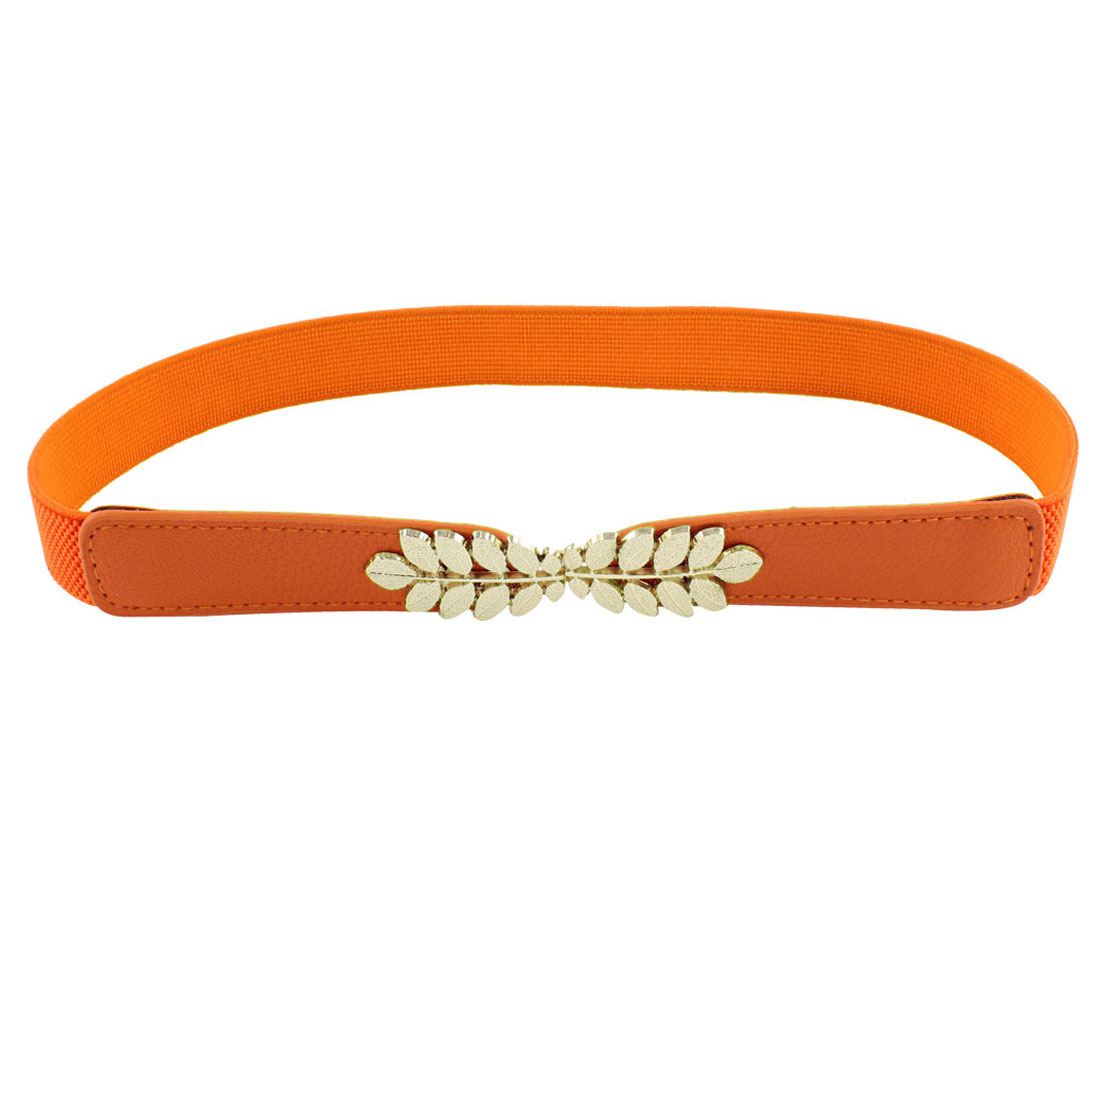 Lady Stretch Waist Belt Waistbelt Waistband 26-31inches Orange